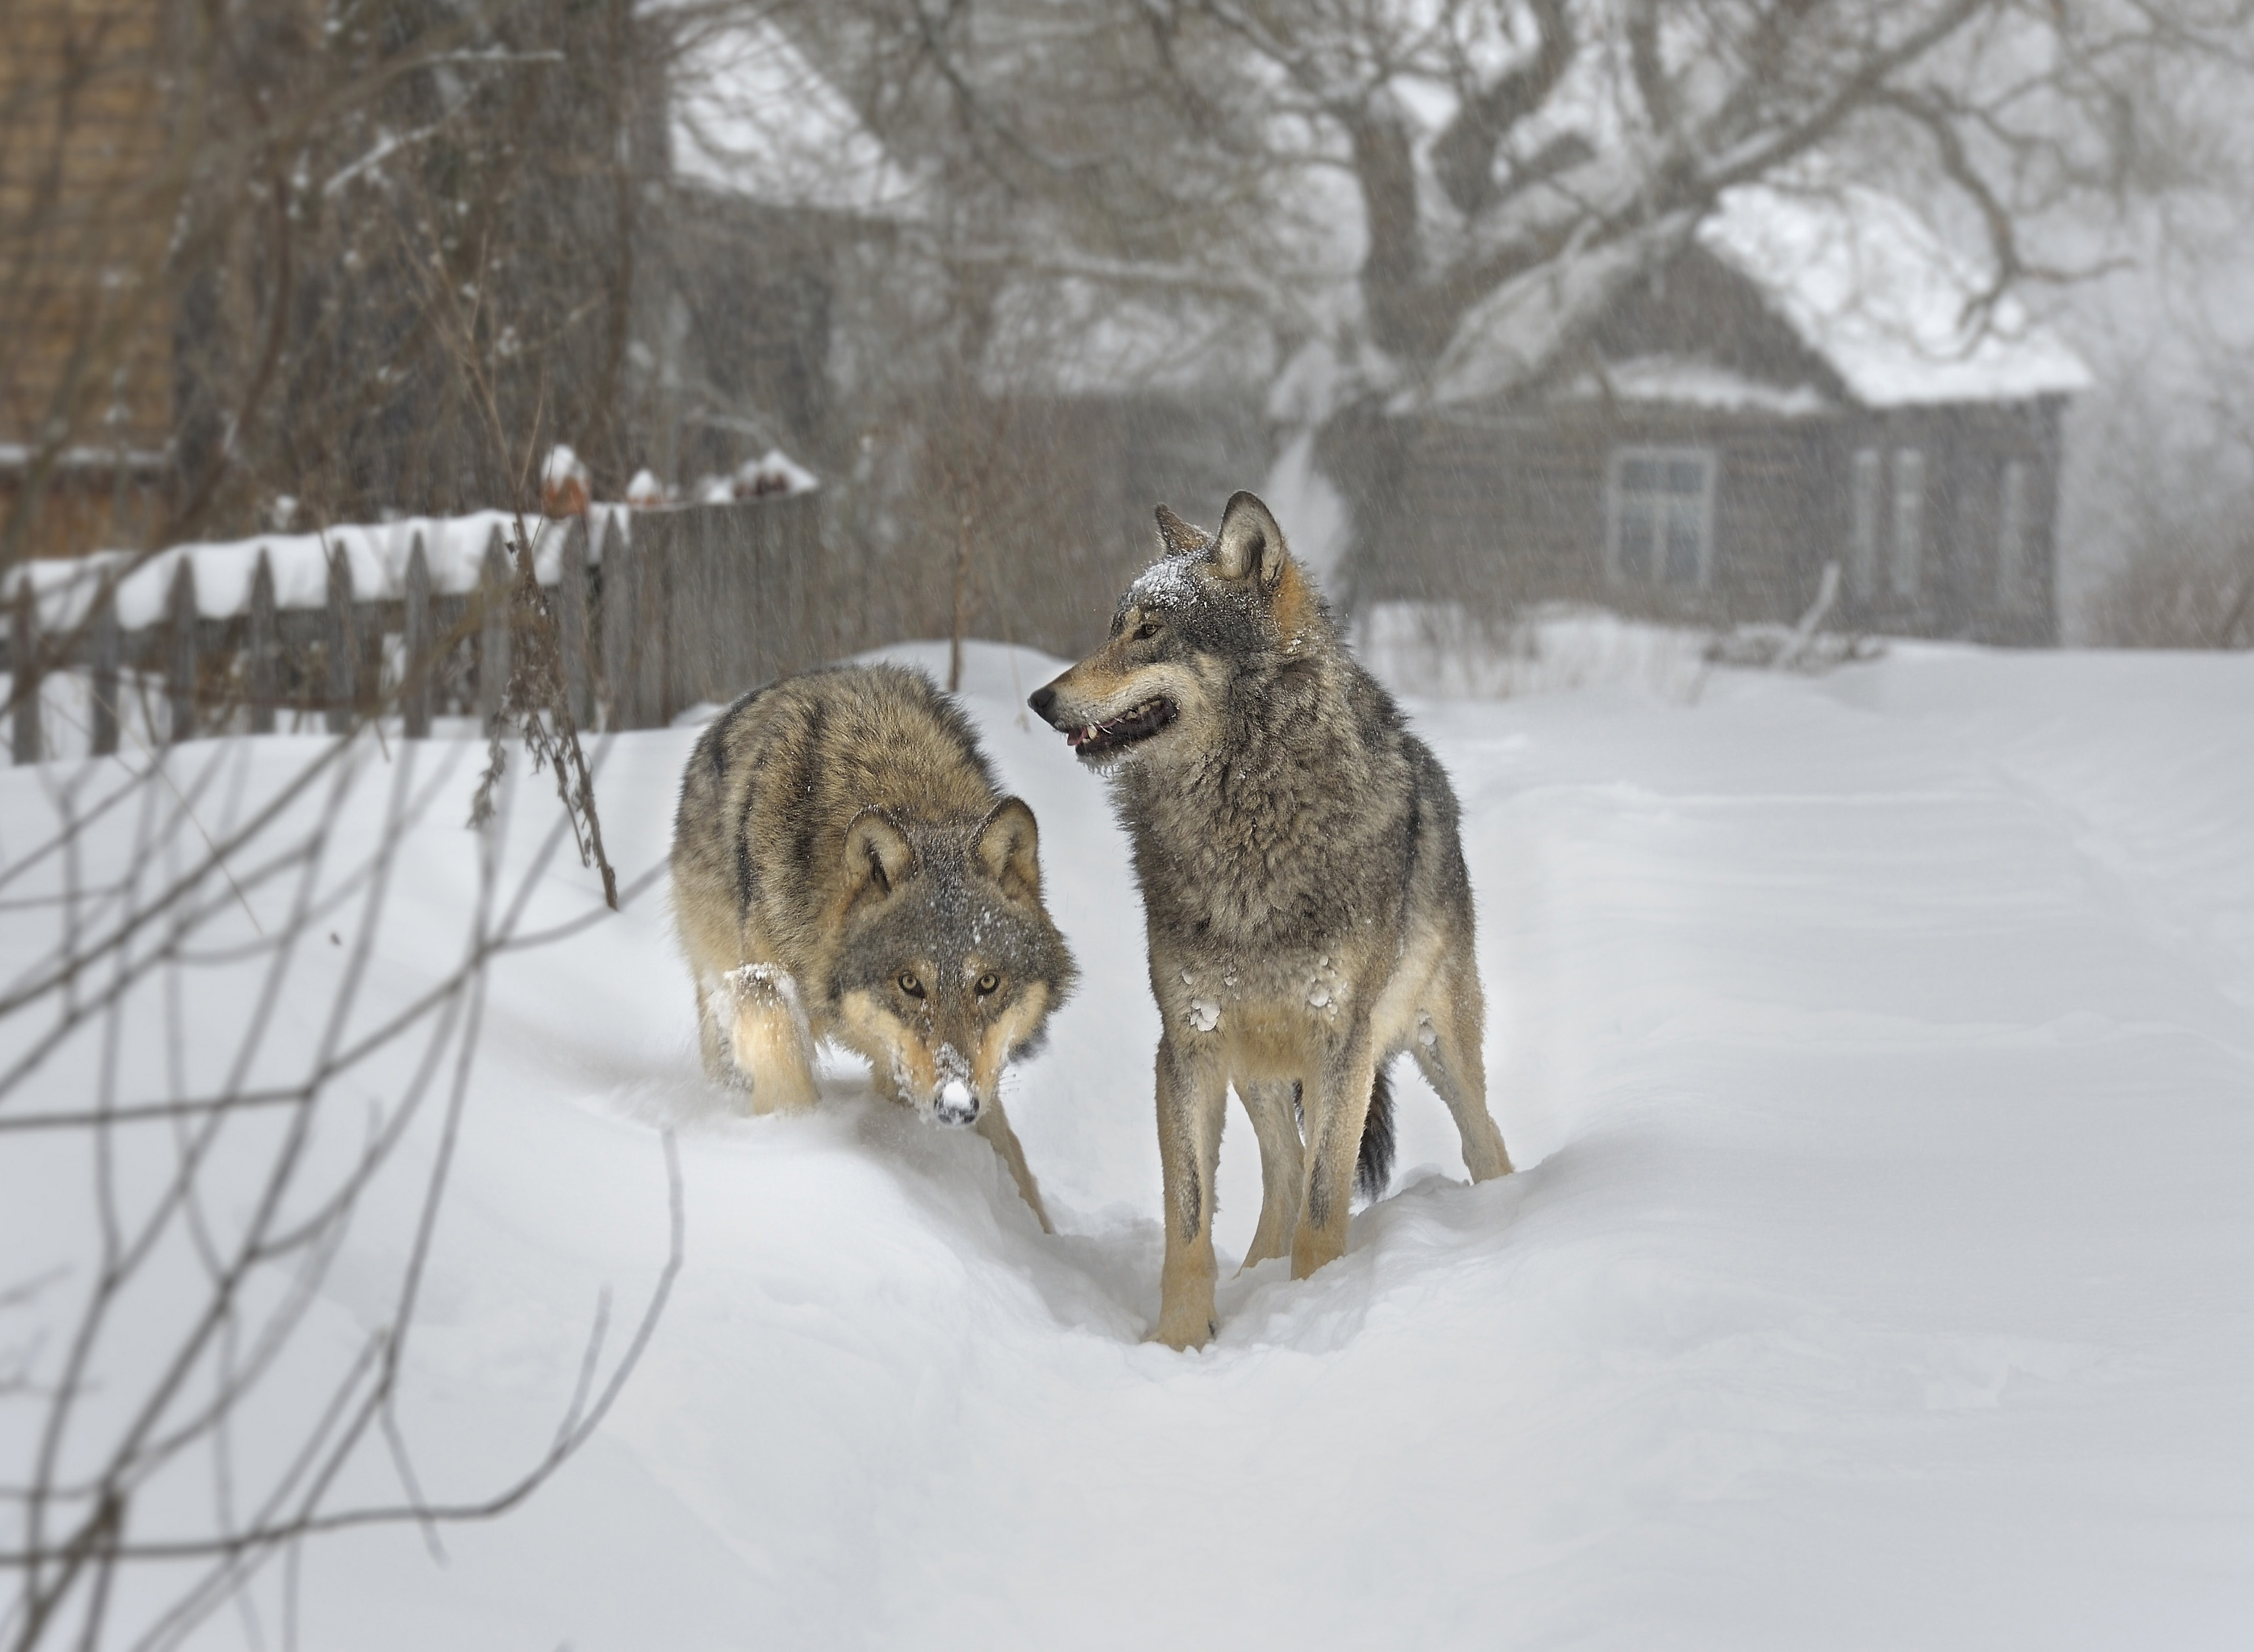 Howling back: With recent economic and political crises roiling the continent, Europe has seen a surge in the once-decimated population of wolves. | BLOOMBERG